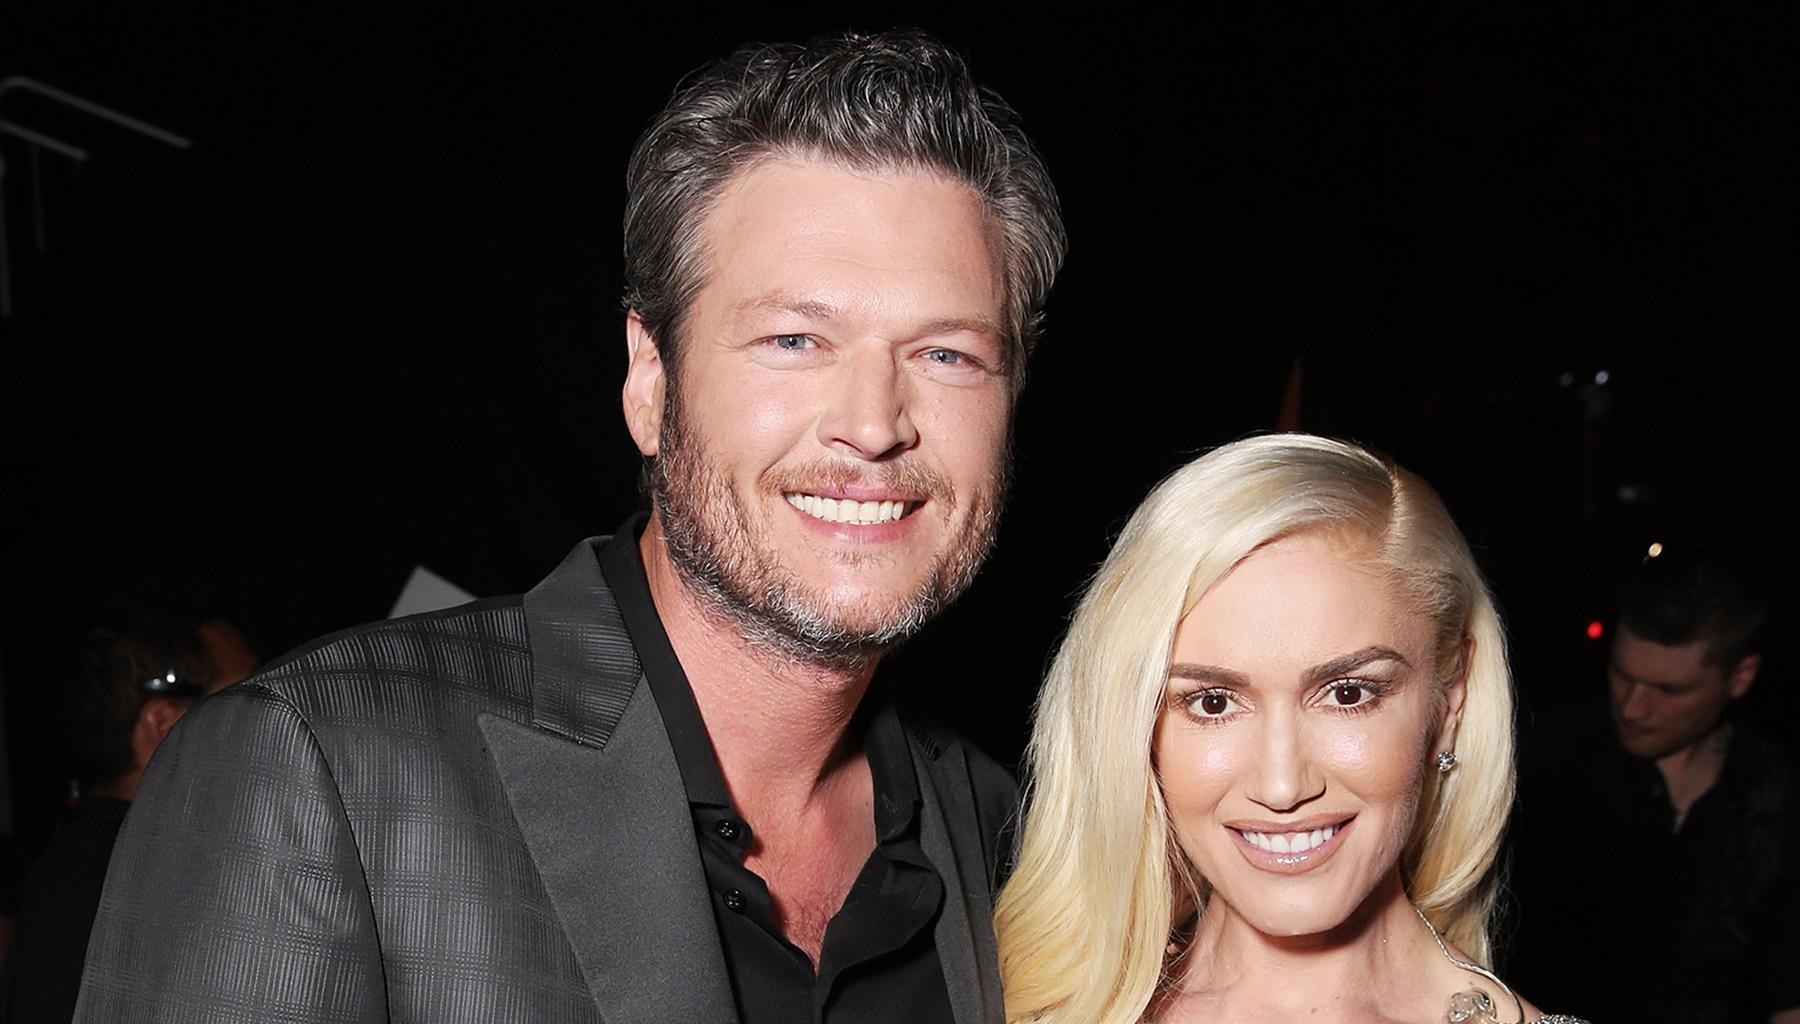 Blake Shelton Avoids Showing His Face When Gwen Stefani Is On Stage -- Here Is The Surprising Reason Behind This